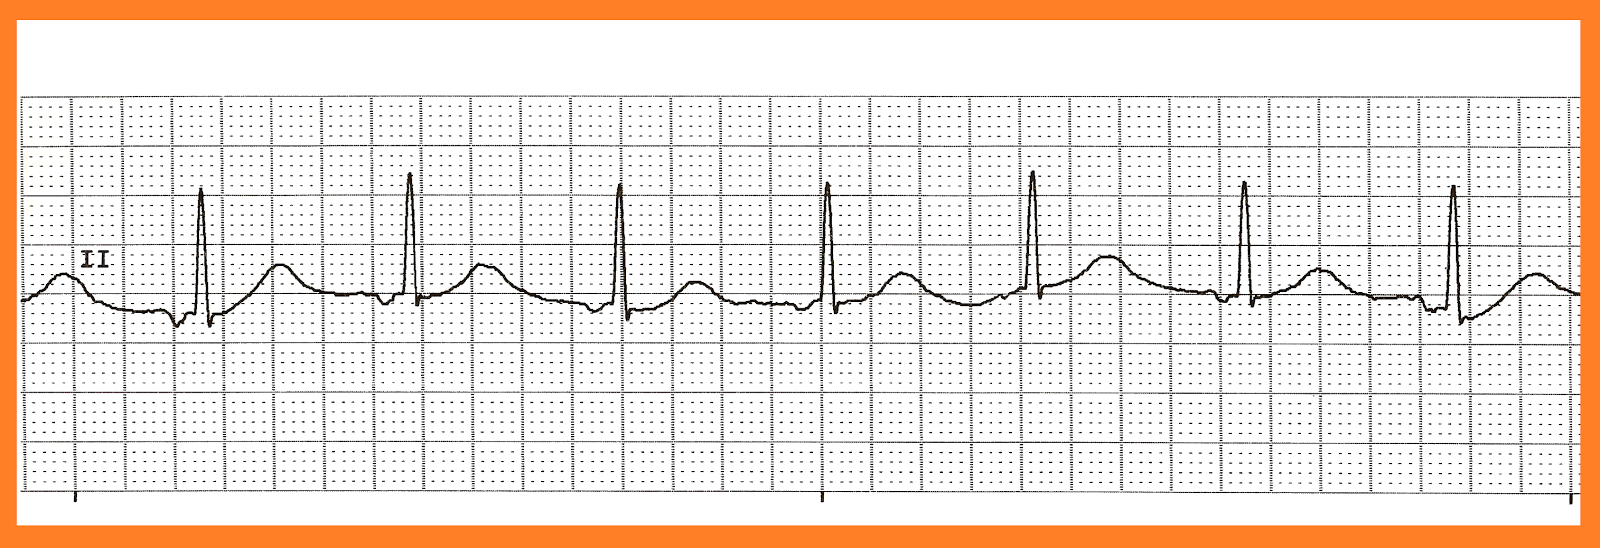 nsr 3 accelerated junctional rhythm 4 accelerated junctional rhythm 5Accelerated Junctional Rhythm